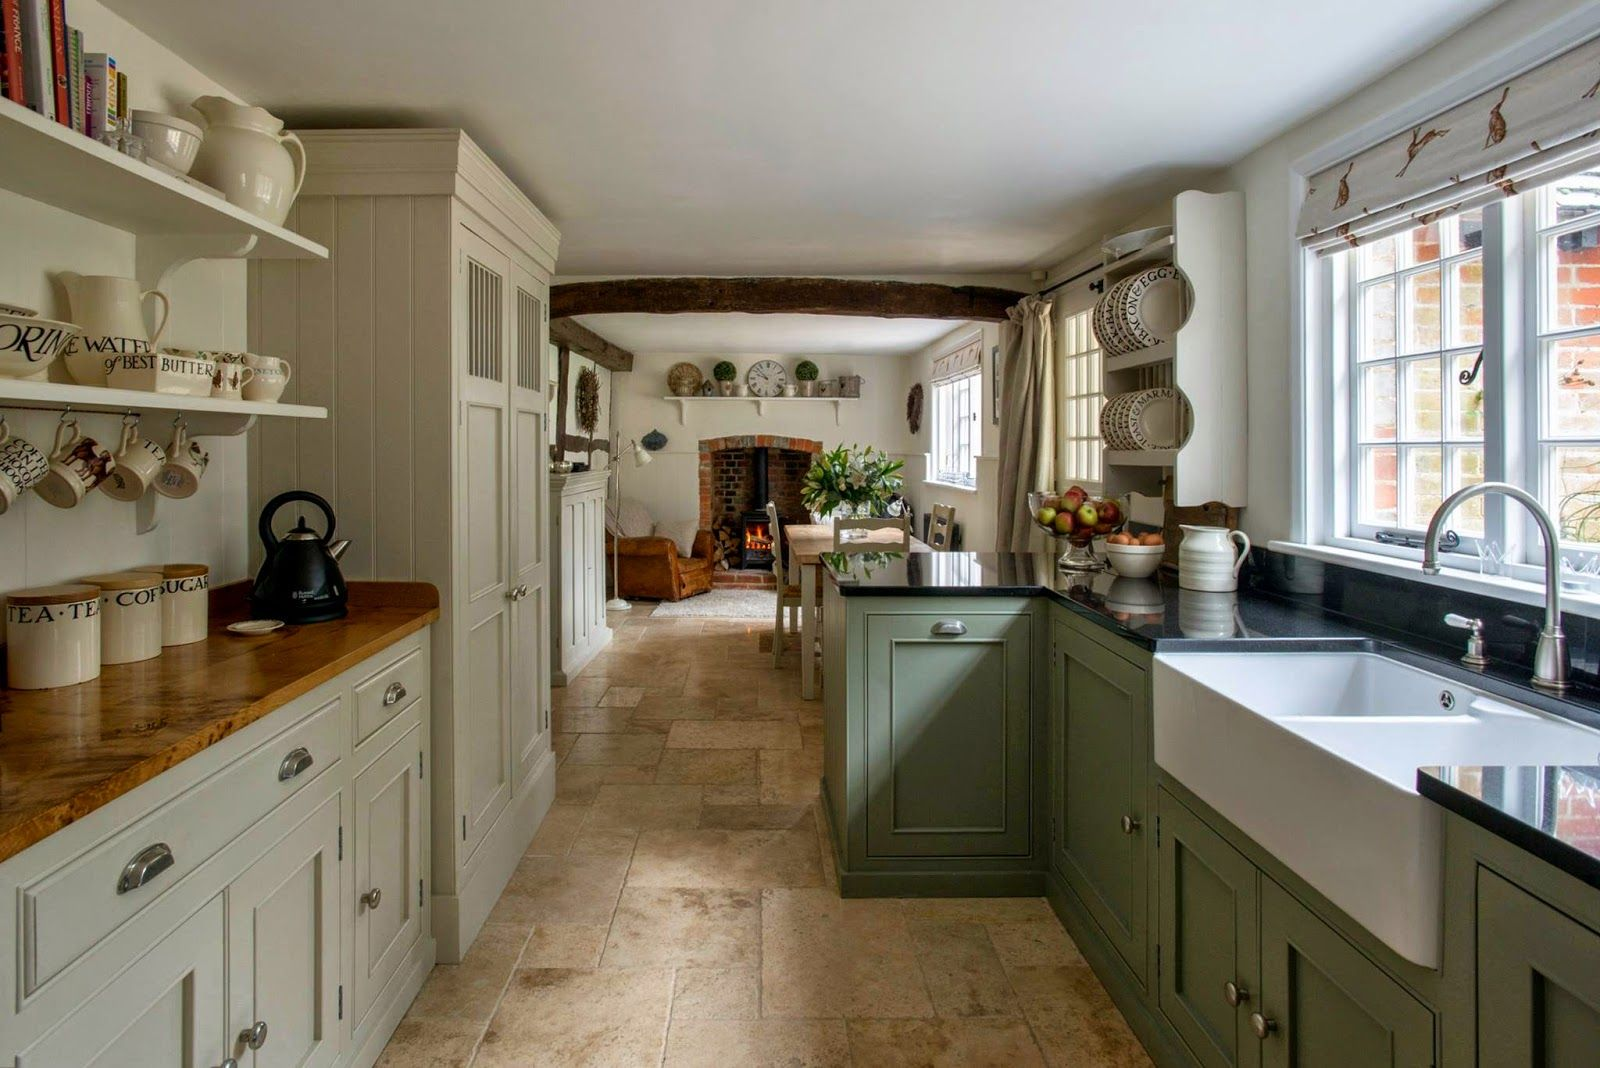 French Country Galley Kitchen how to blend modern and country styles within your home's decor